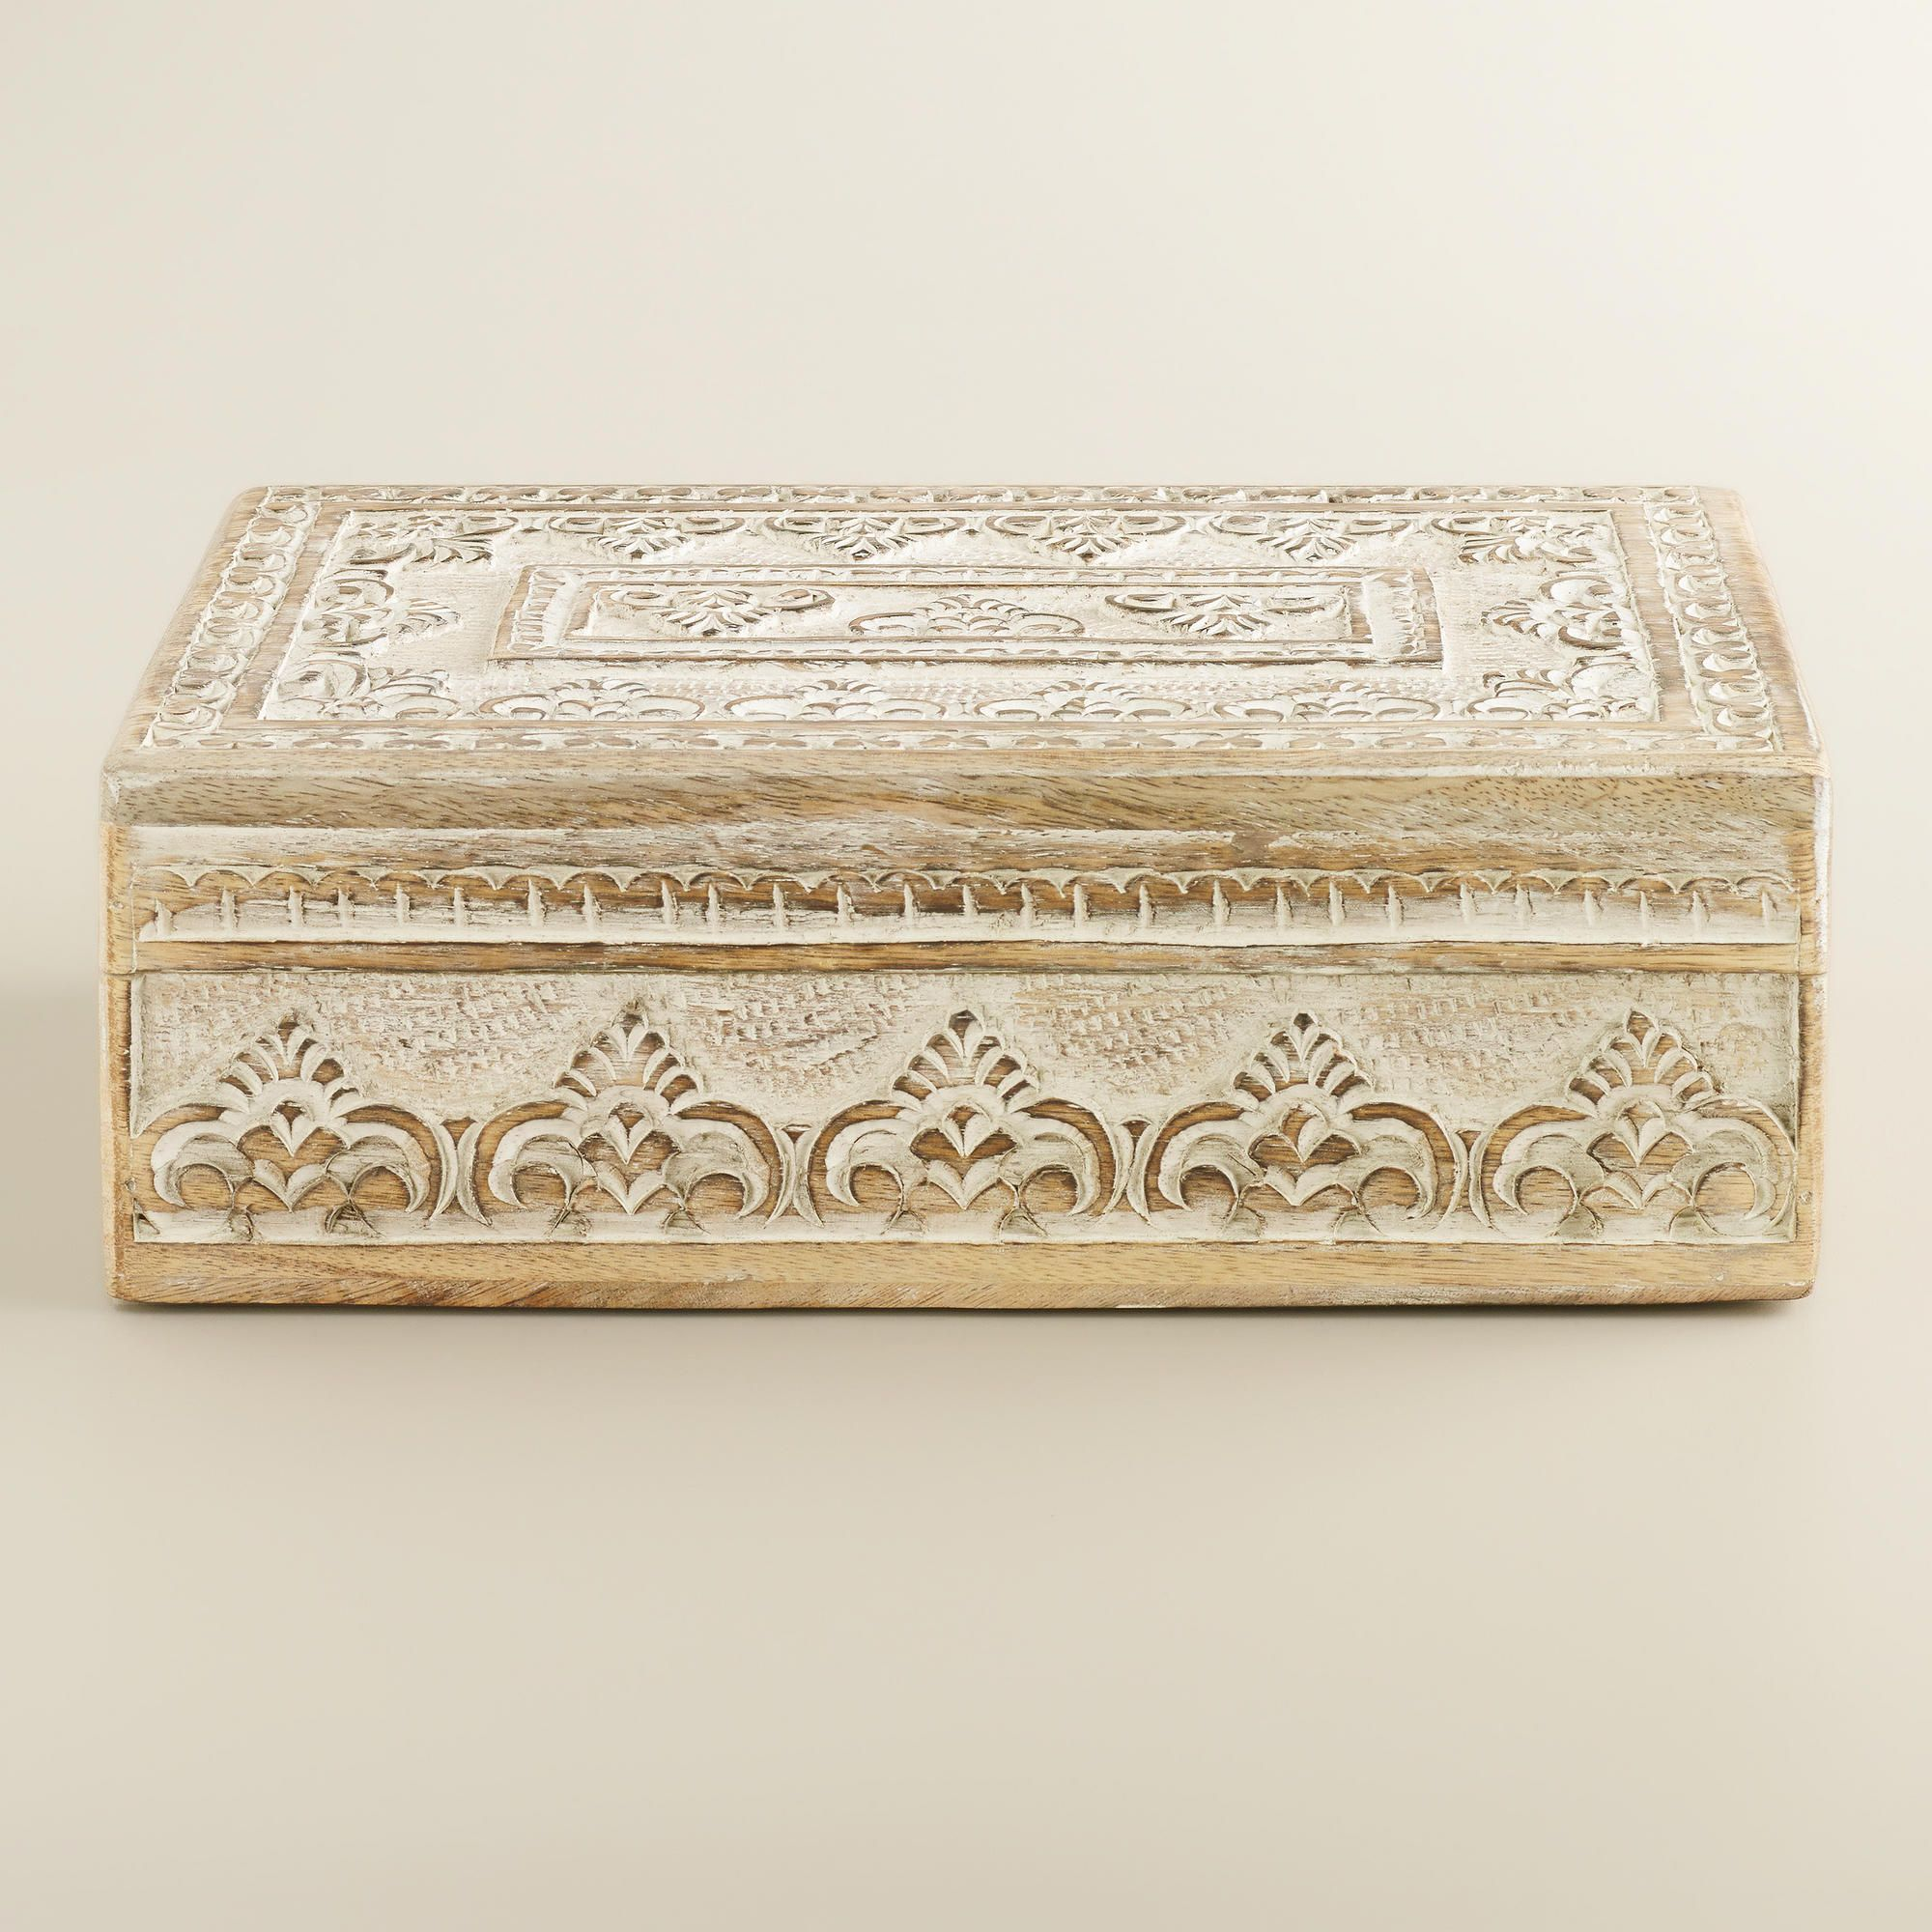 World Market Jewelry Box Enchanting Whitewash Carved Brooklyn Jewelry Box  World Market  Boudoir Inspiration